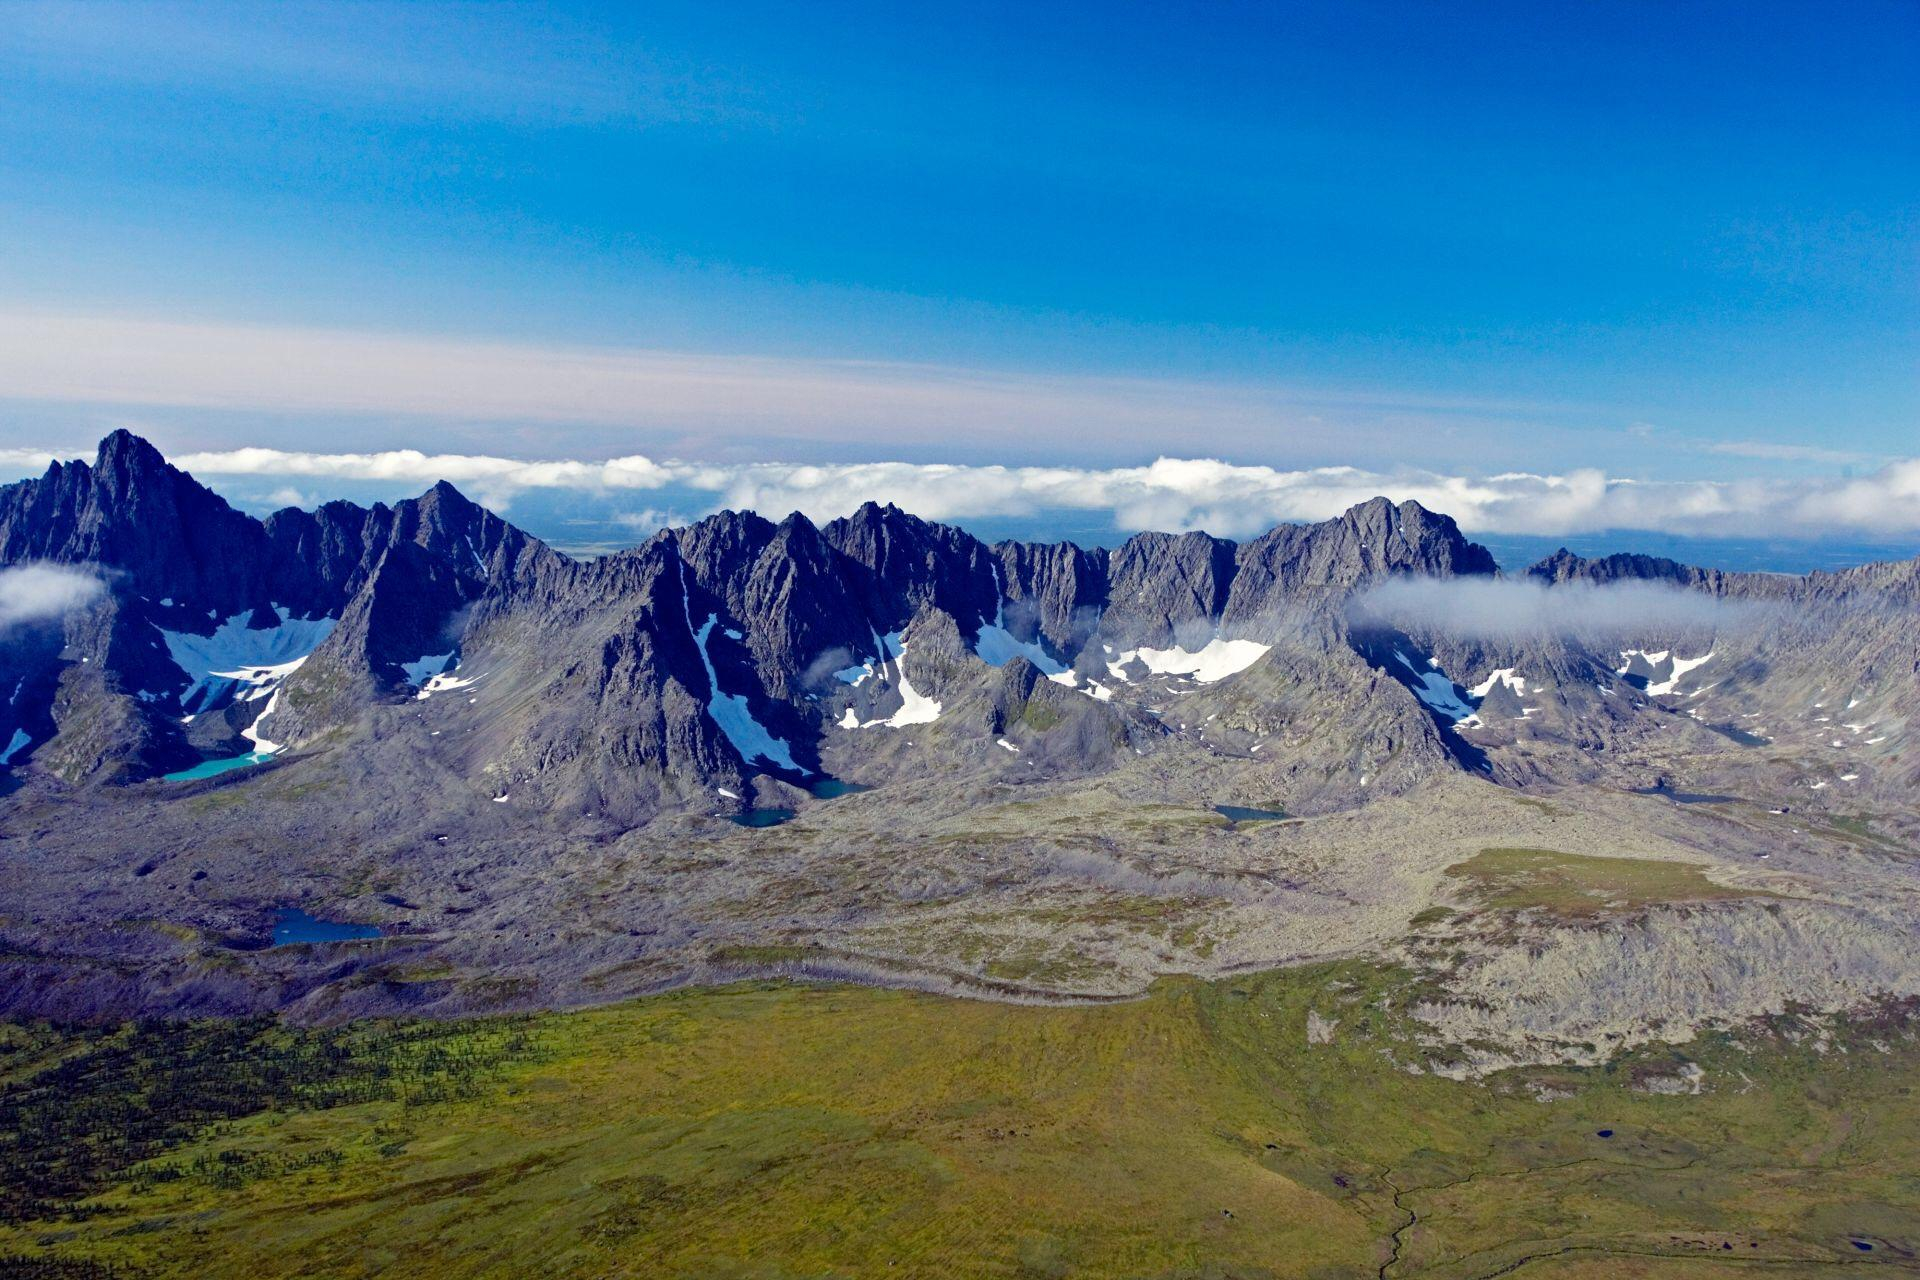 The Ural Mountains